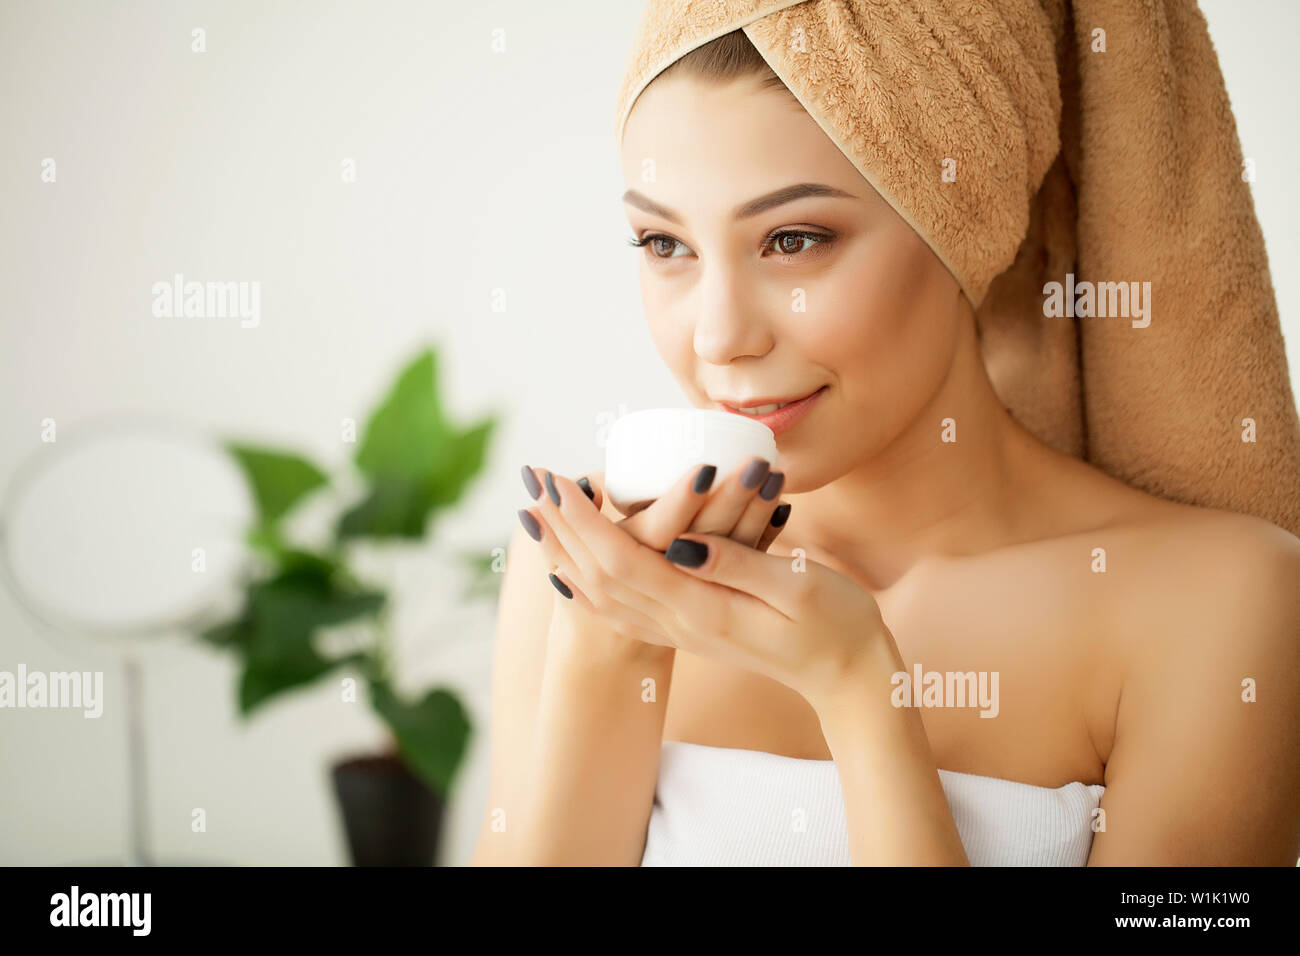 Young Spa Model with Clear Skin and Towel. Beautiful Spa Woman Applyng Monsturizing Cream. Skincare, Bodycare and Spa Beauty Concept - Stock Image